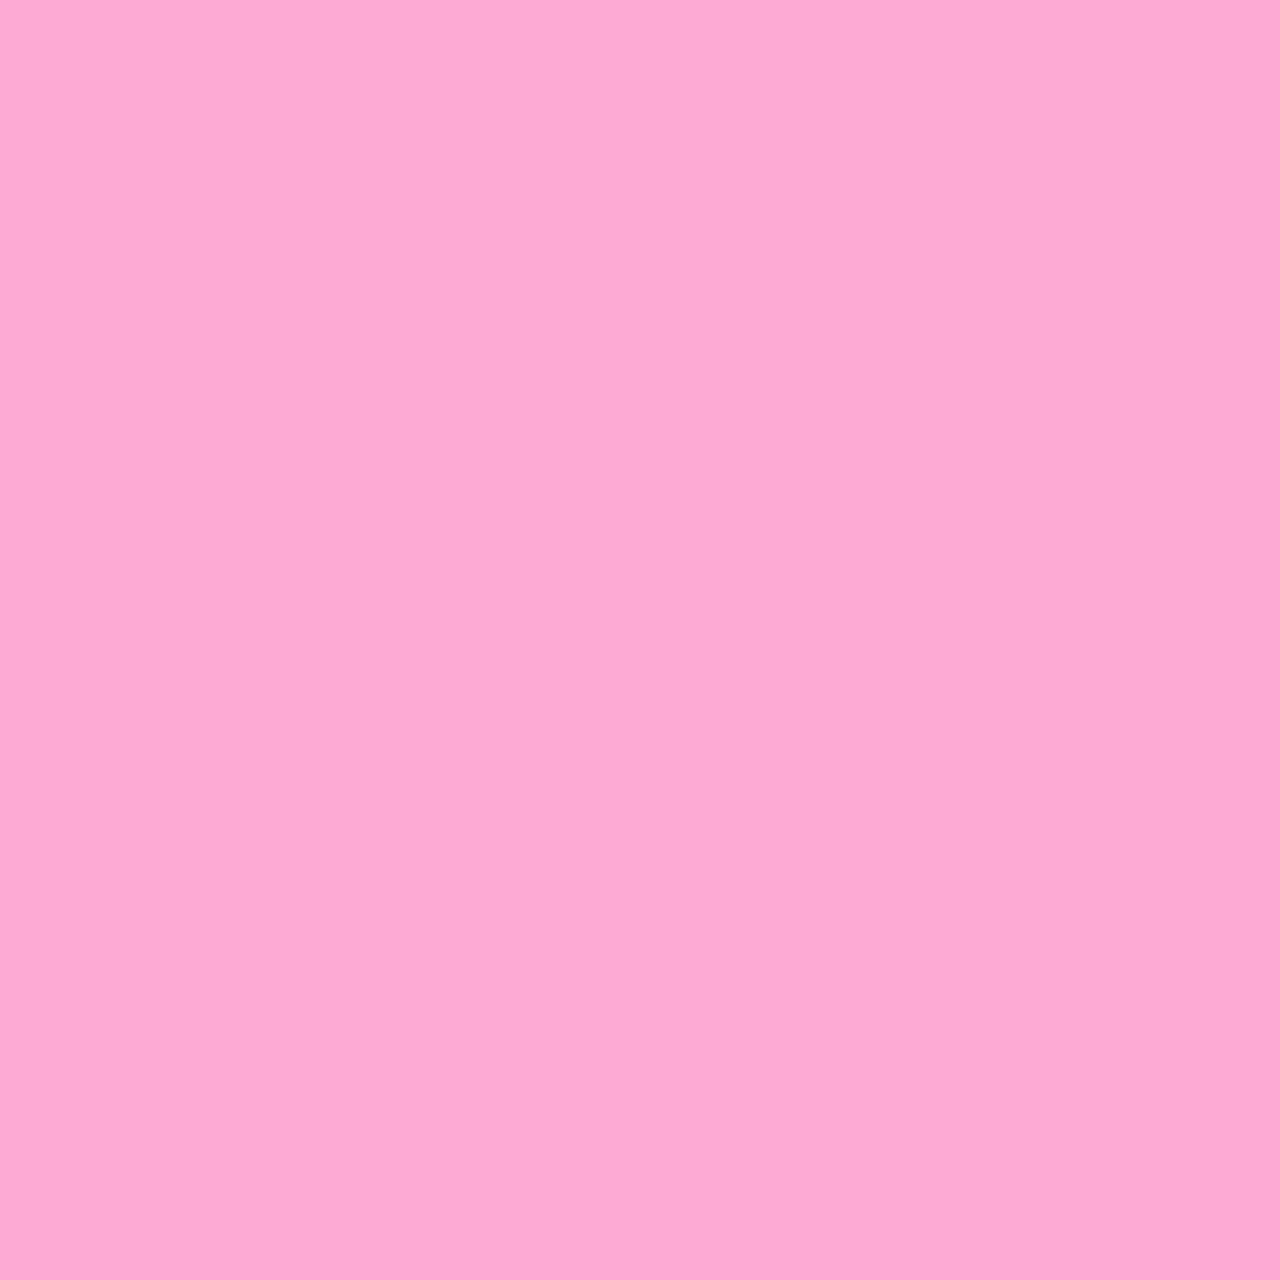 Rosco Calcolor Sheet #4815: 15 Pink, Gels